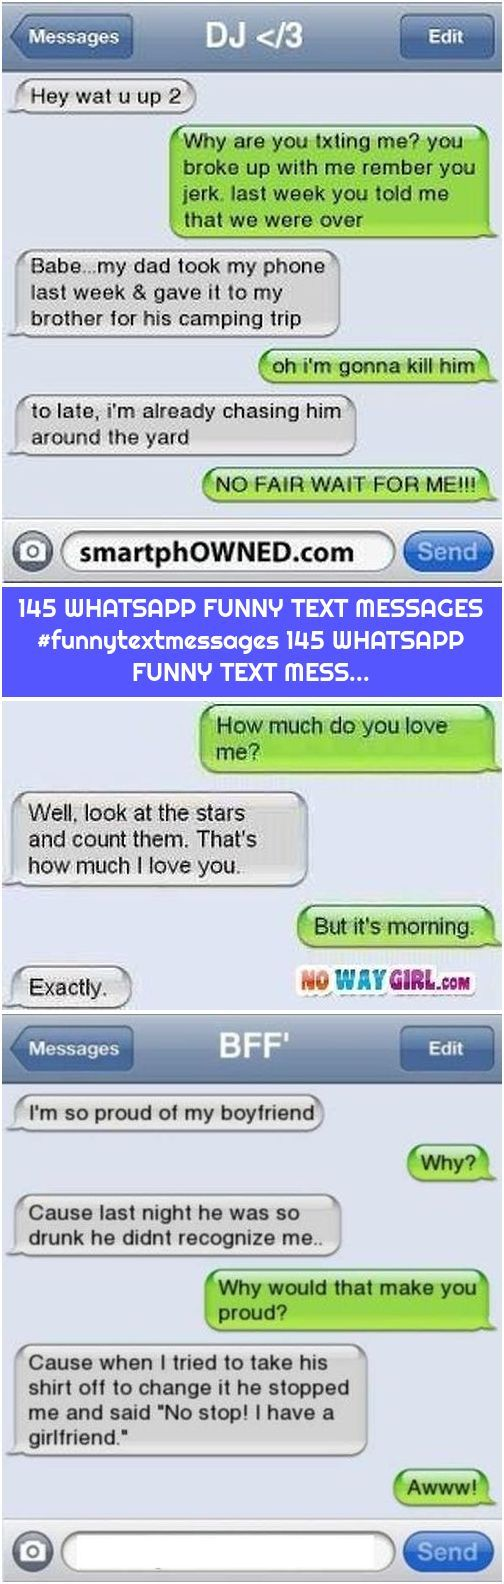 145 WHATSAPP FUNNY TEXT MESSAGES #funnytextmessages 145 WHATSAPP FUNNY TEXT MESS...